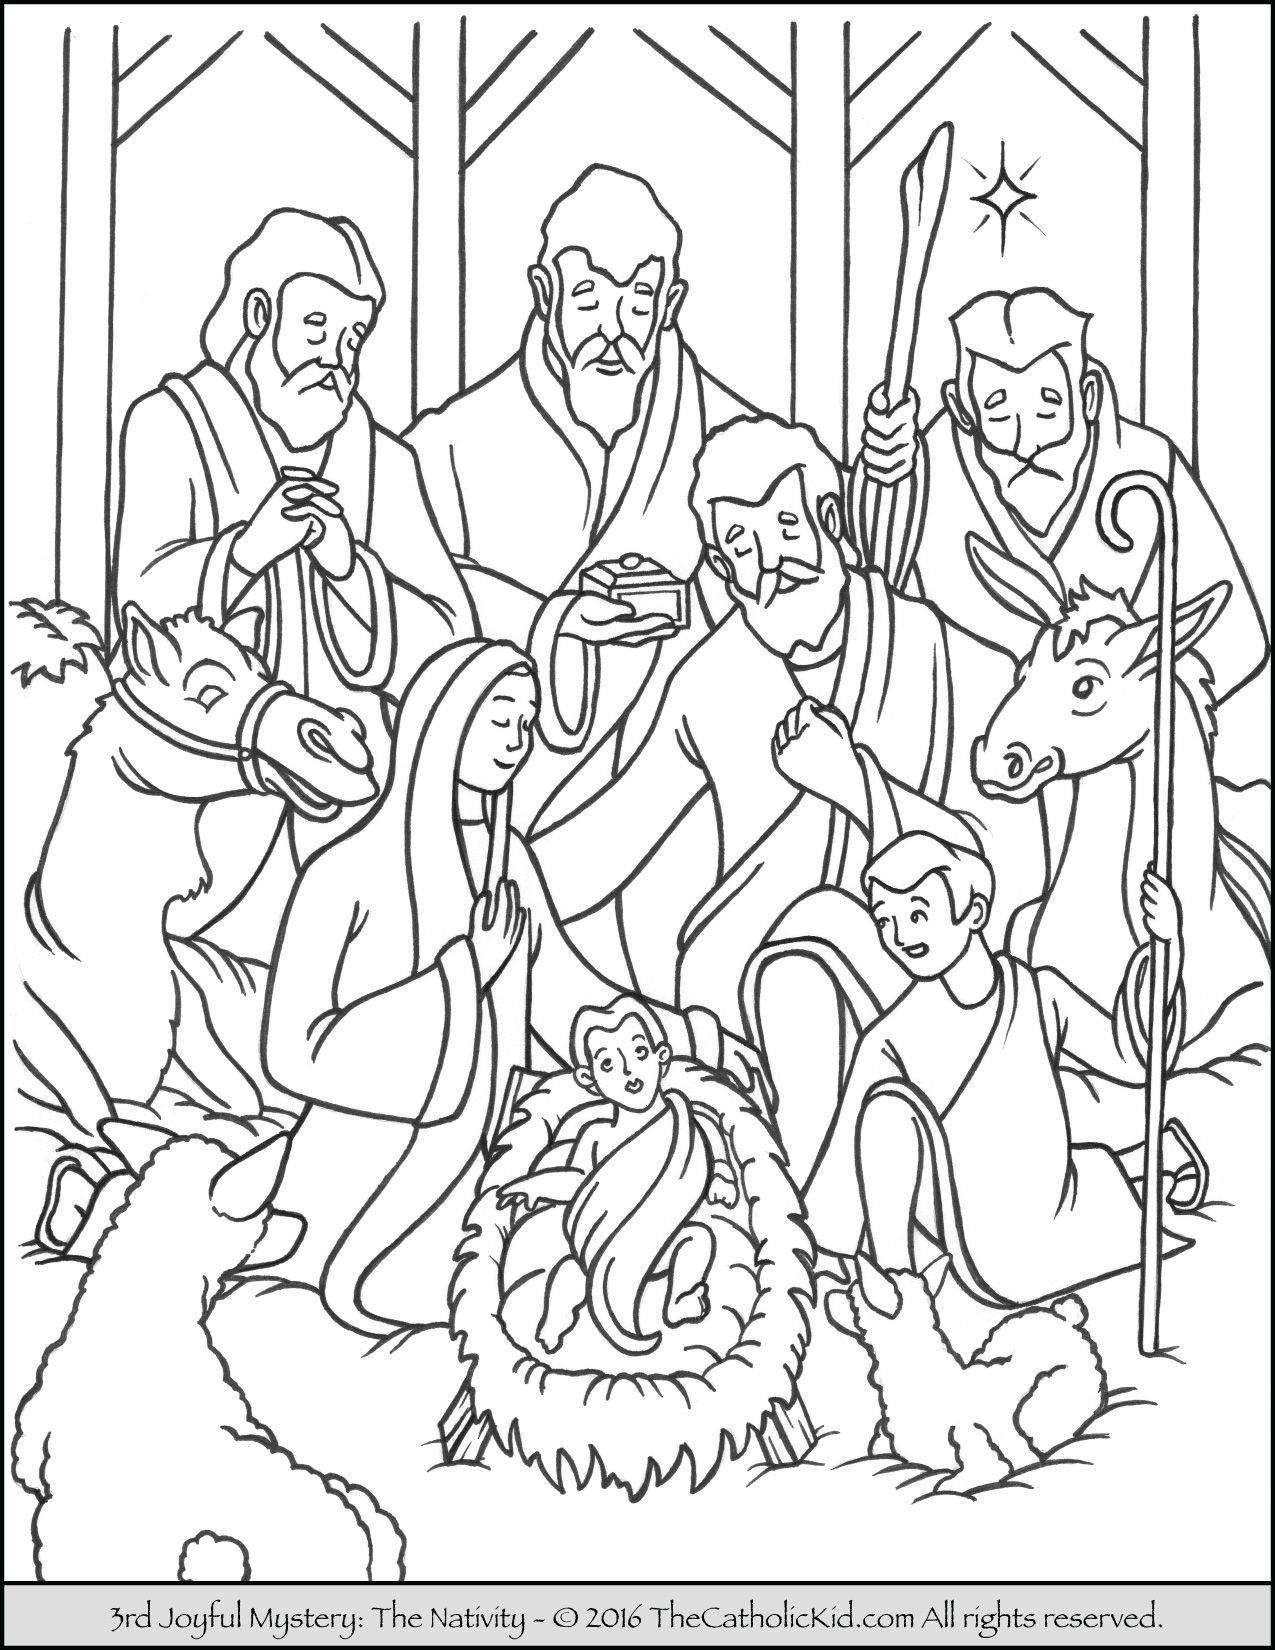 free colouring great nativity coloring page nativity coloring pages for your free colouring scene with holy family shepherds and animals nativity nativity